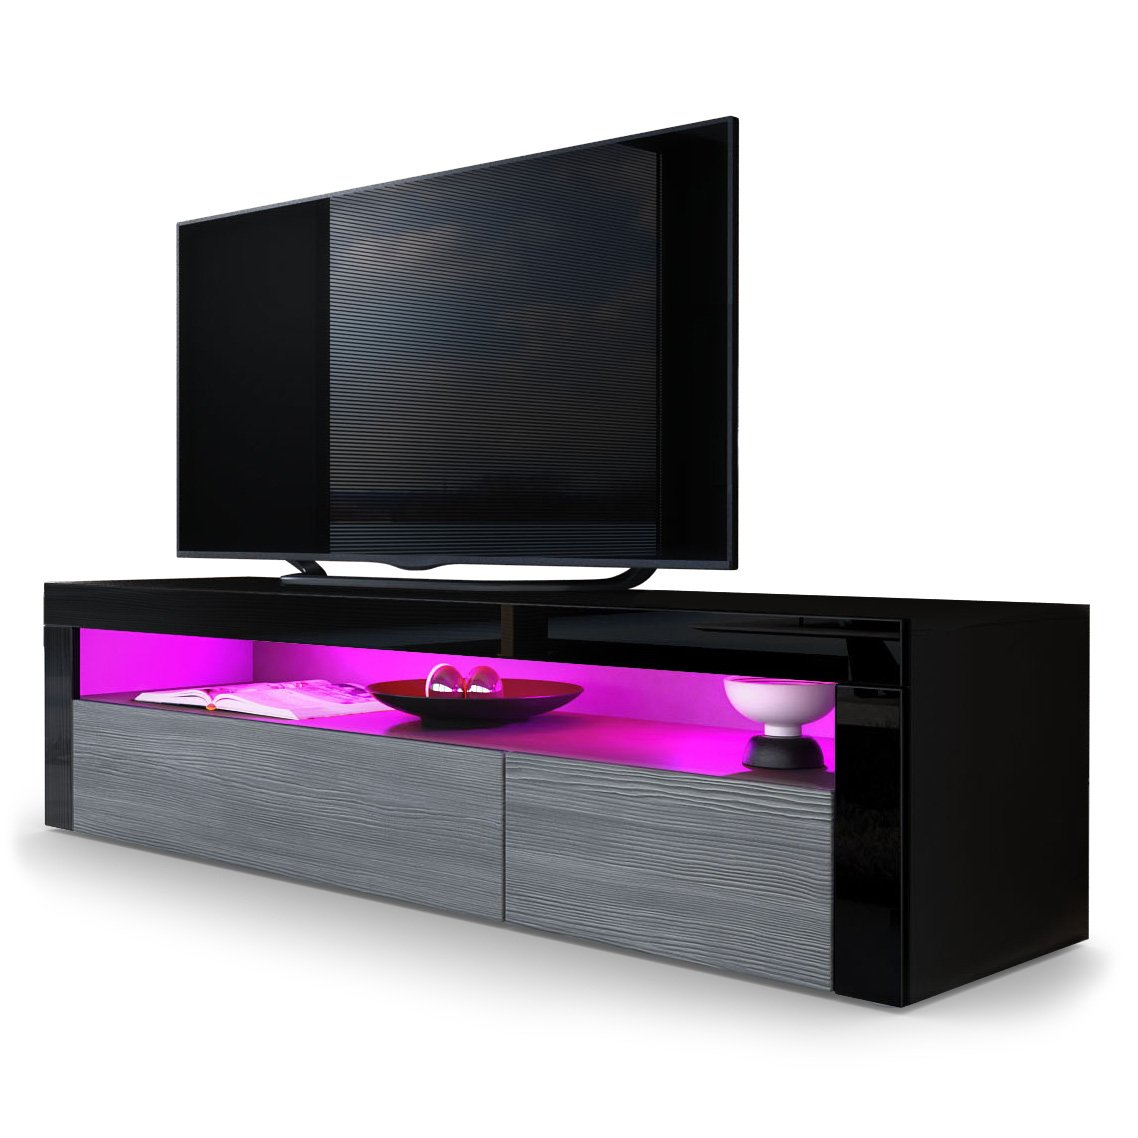 Avola-anthracite   Black High Gloss TV Unit Valencia Vladon TV Stand Unit Valencia, Carcass in Black matt Front in Black High Gloss a frame in Black High Gloss